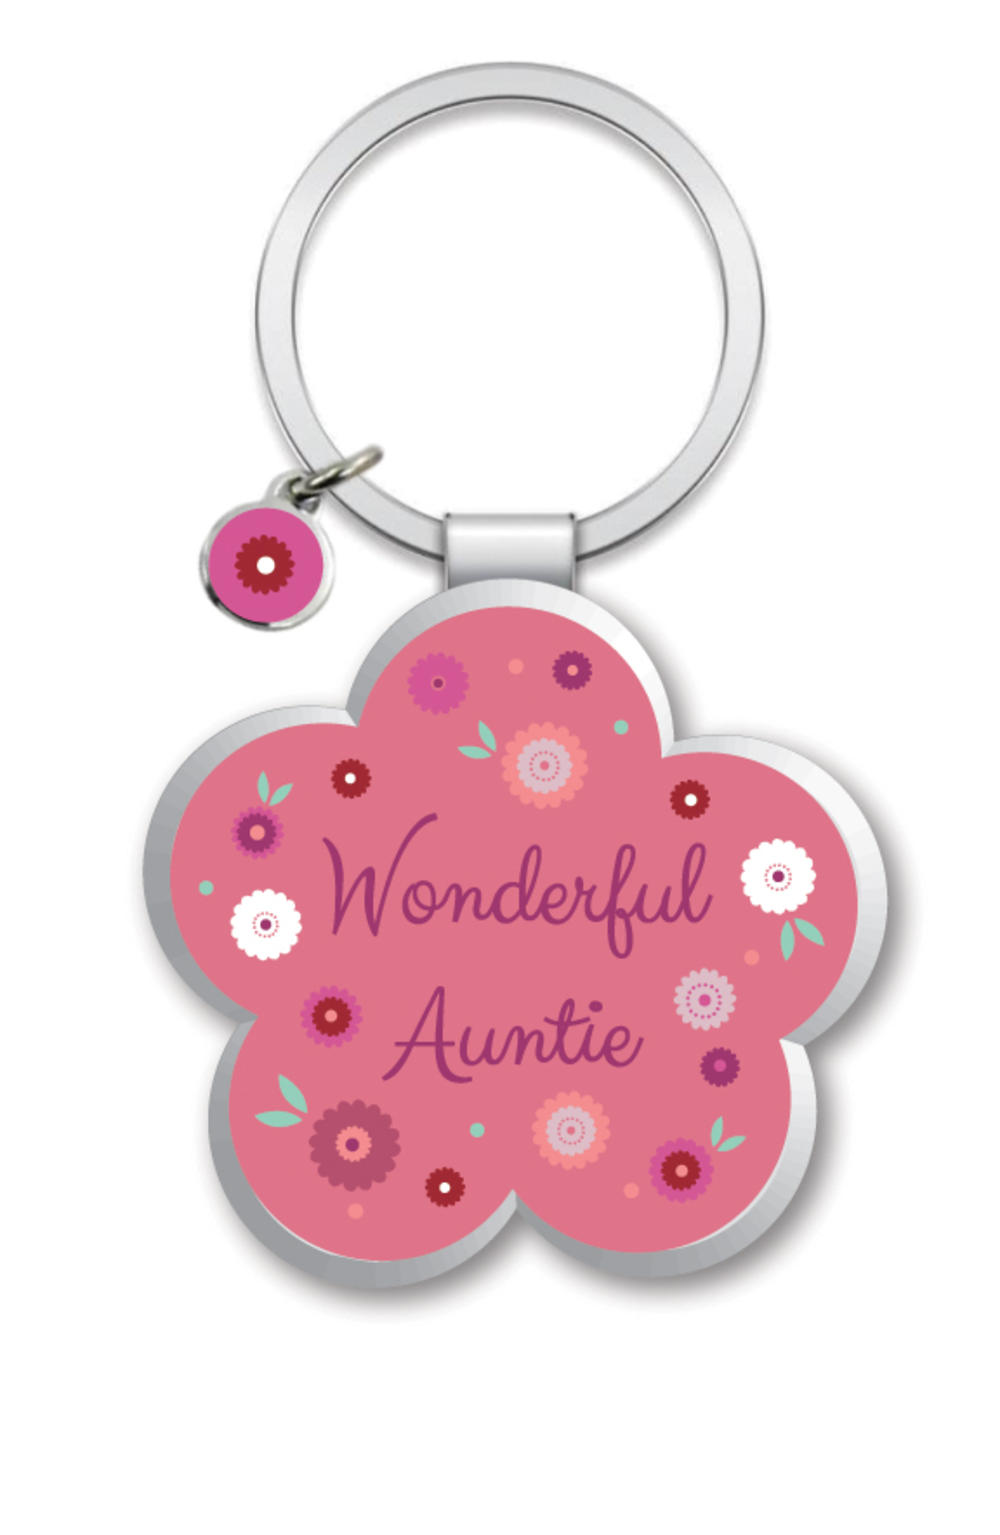 Wonderful Auntie Little Wishes Metallic Keyring